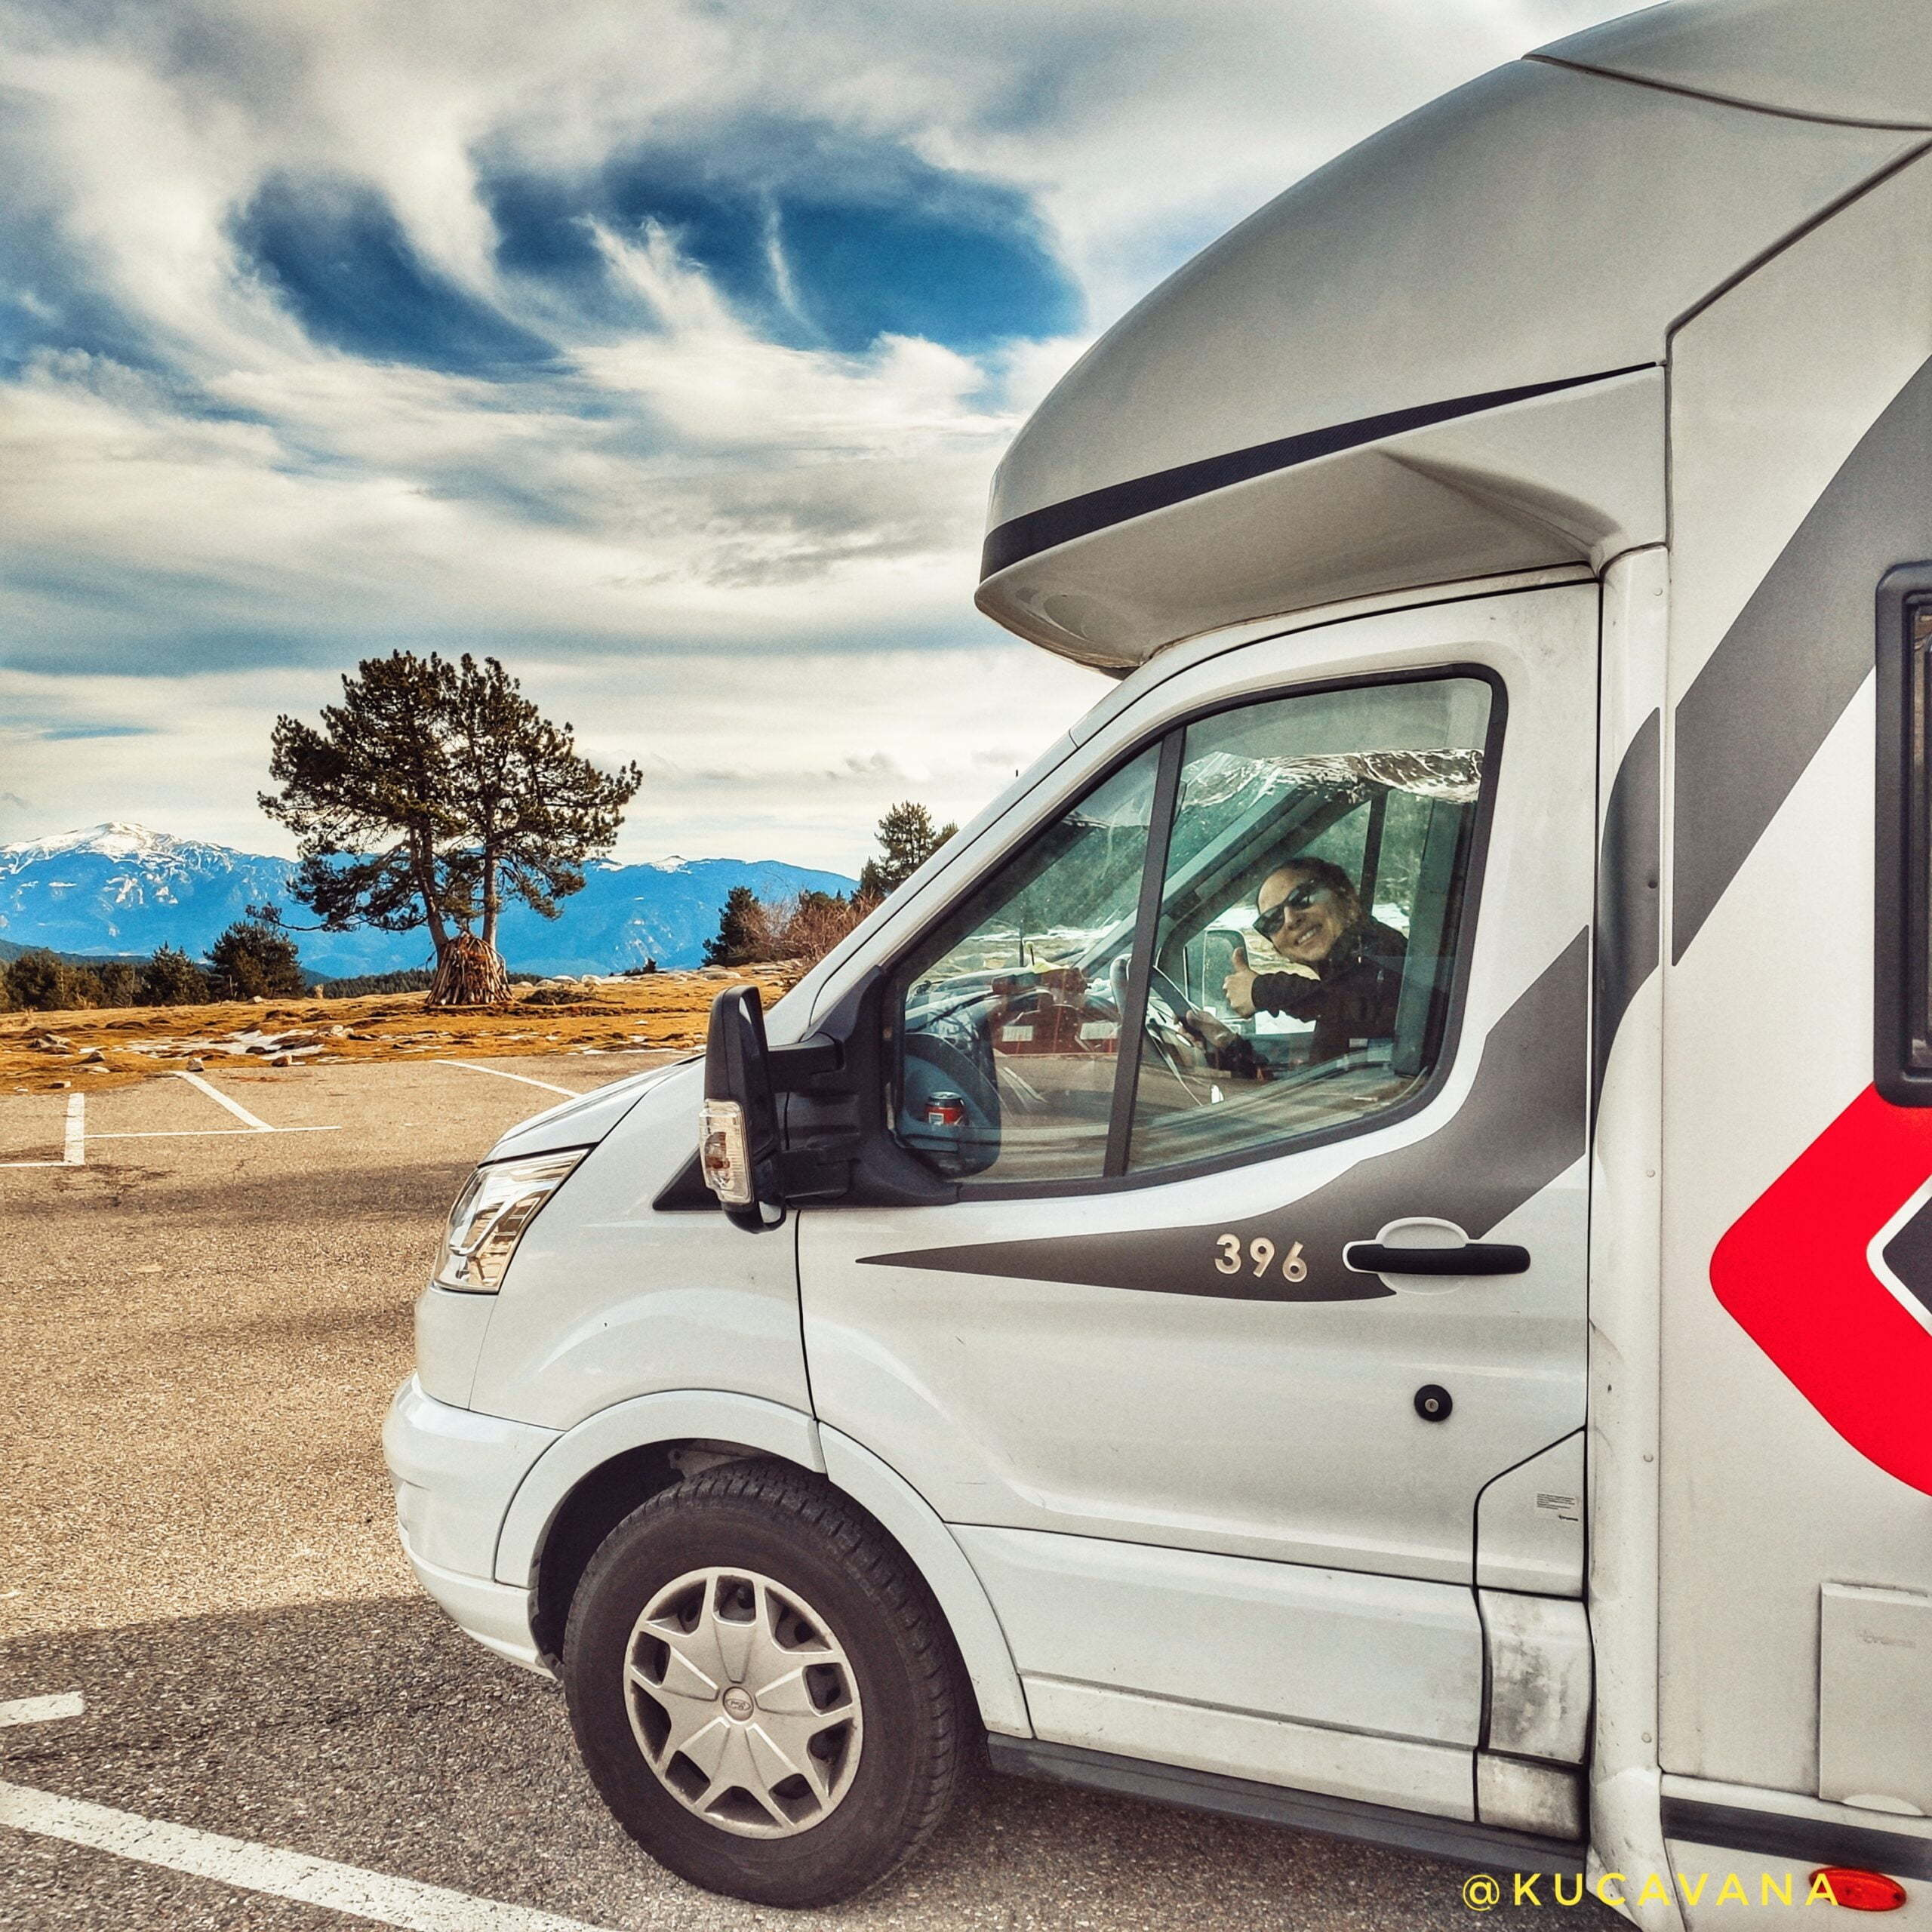 Read more about the article Driving, parking, spending the night or camping a motorhome in Spain: guide to regulations, technology and more